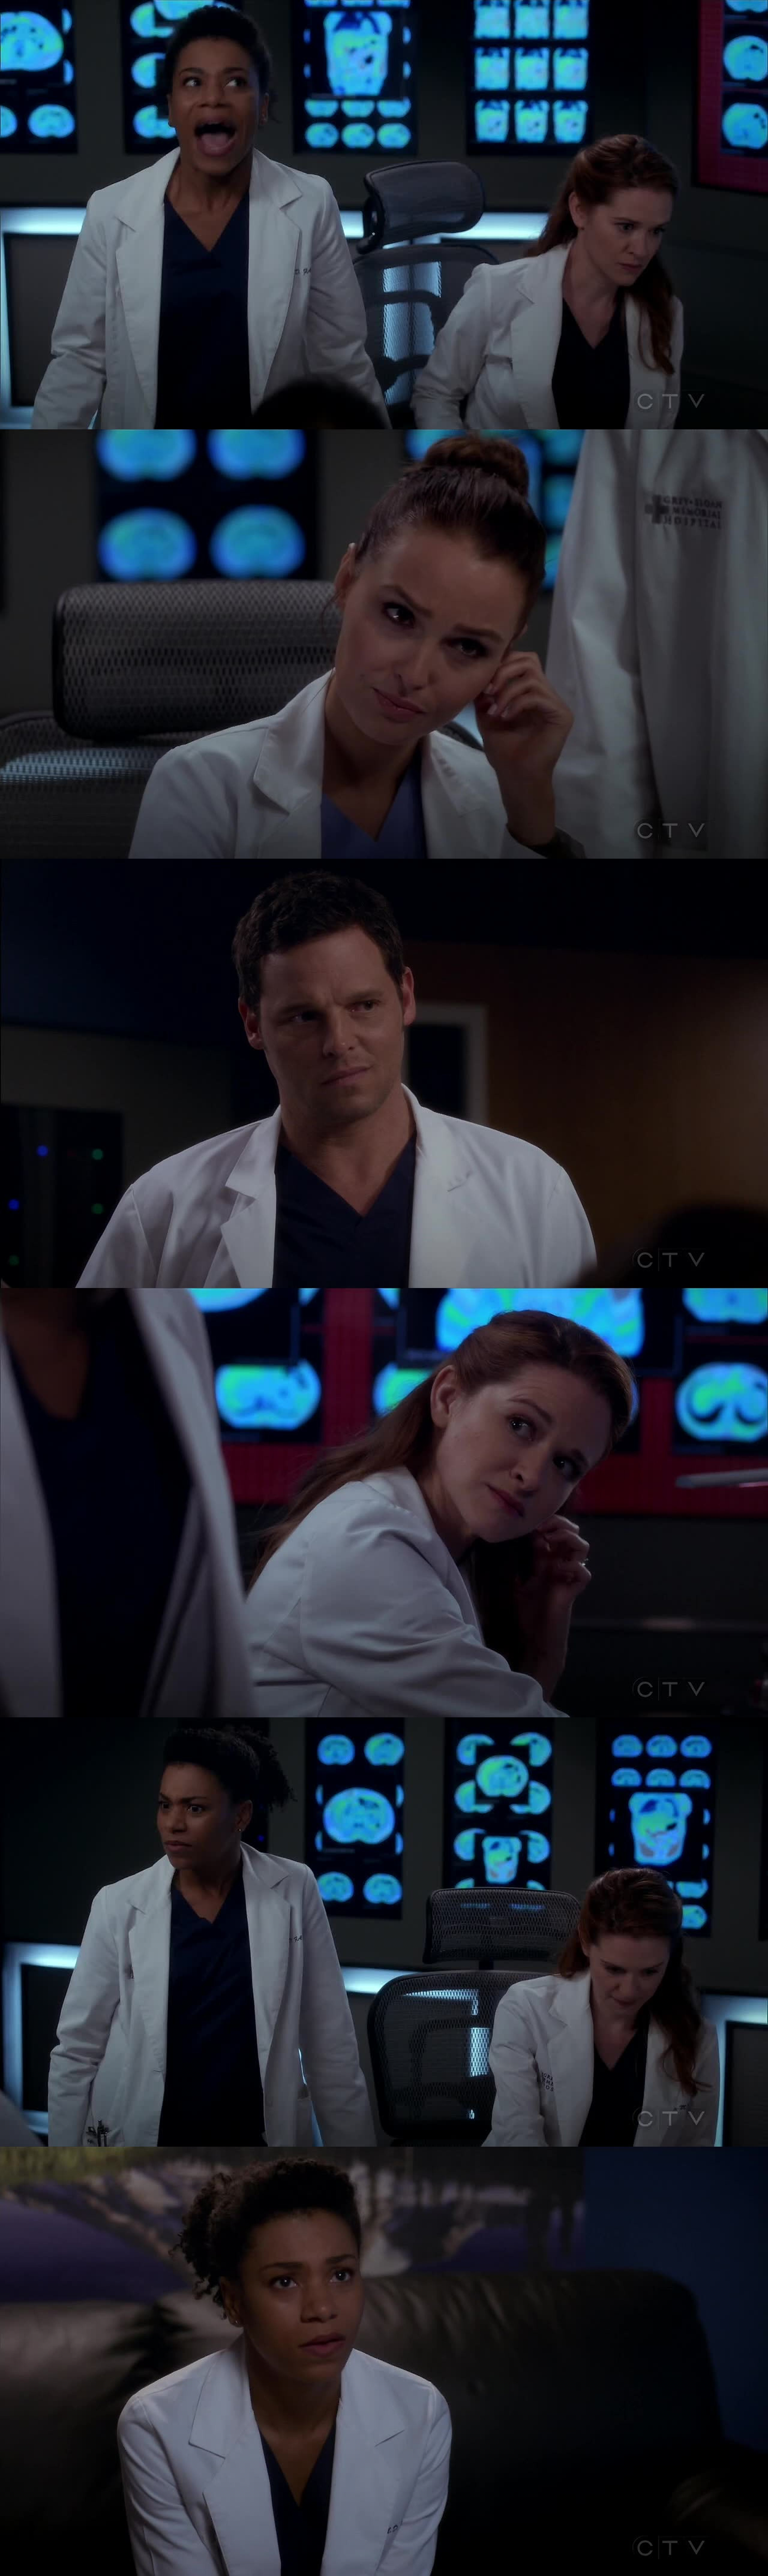 That scene tho!! I'm living for Maggie's awkwardness. XD